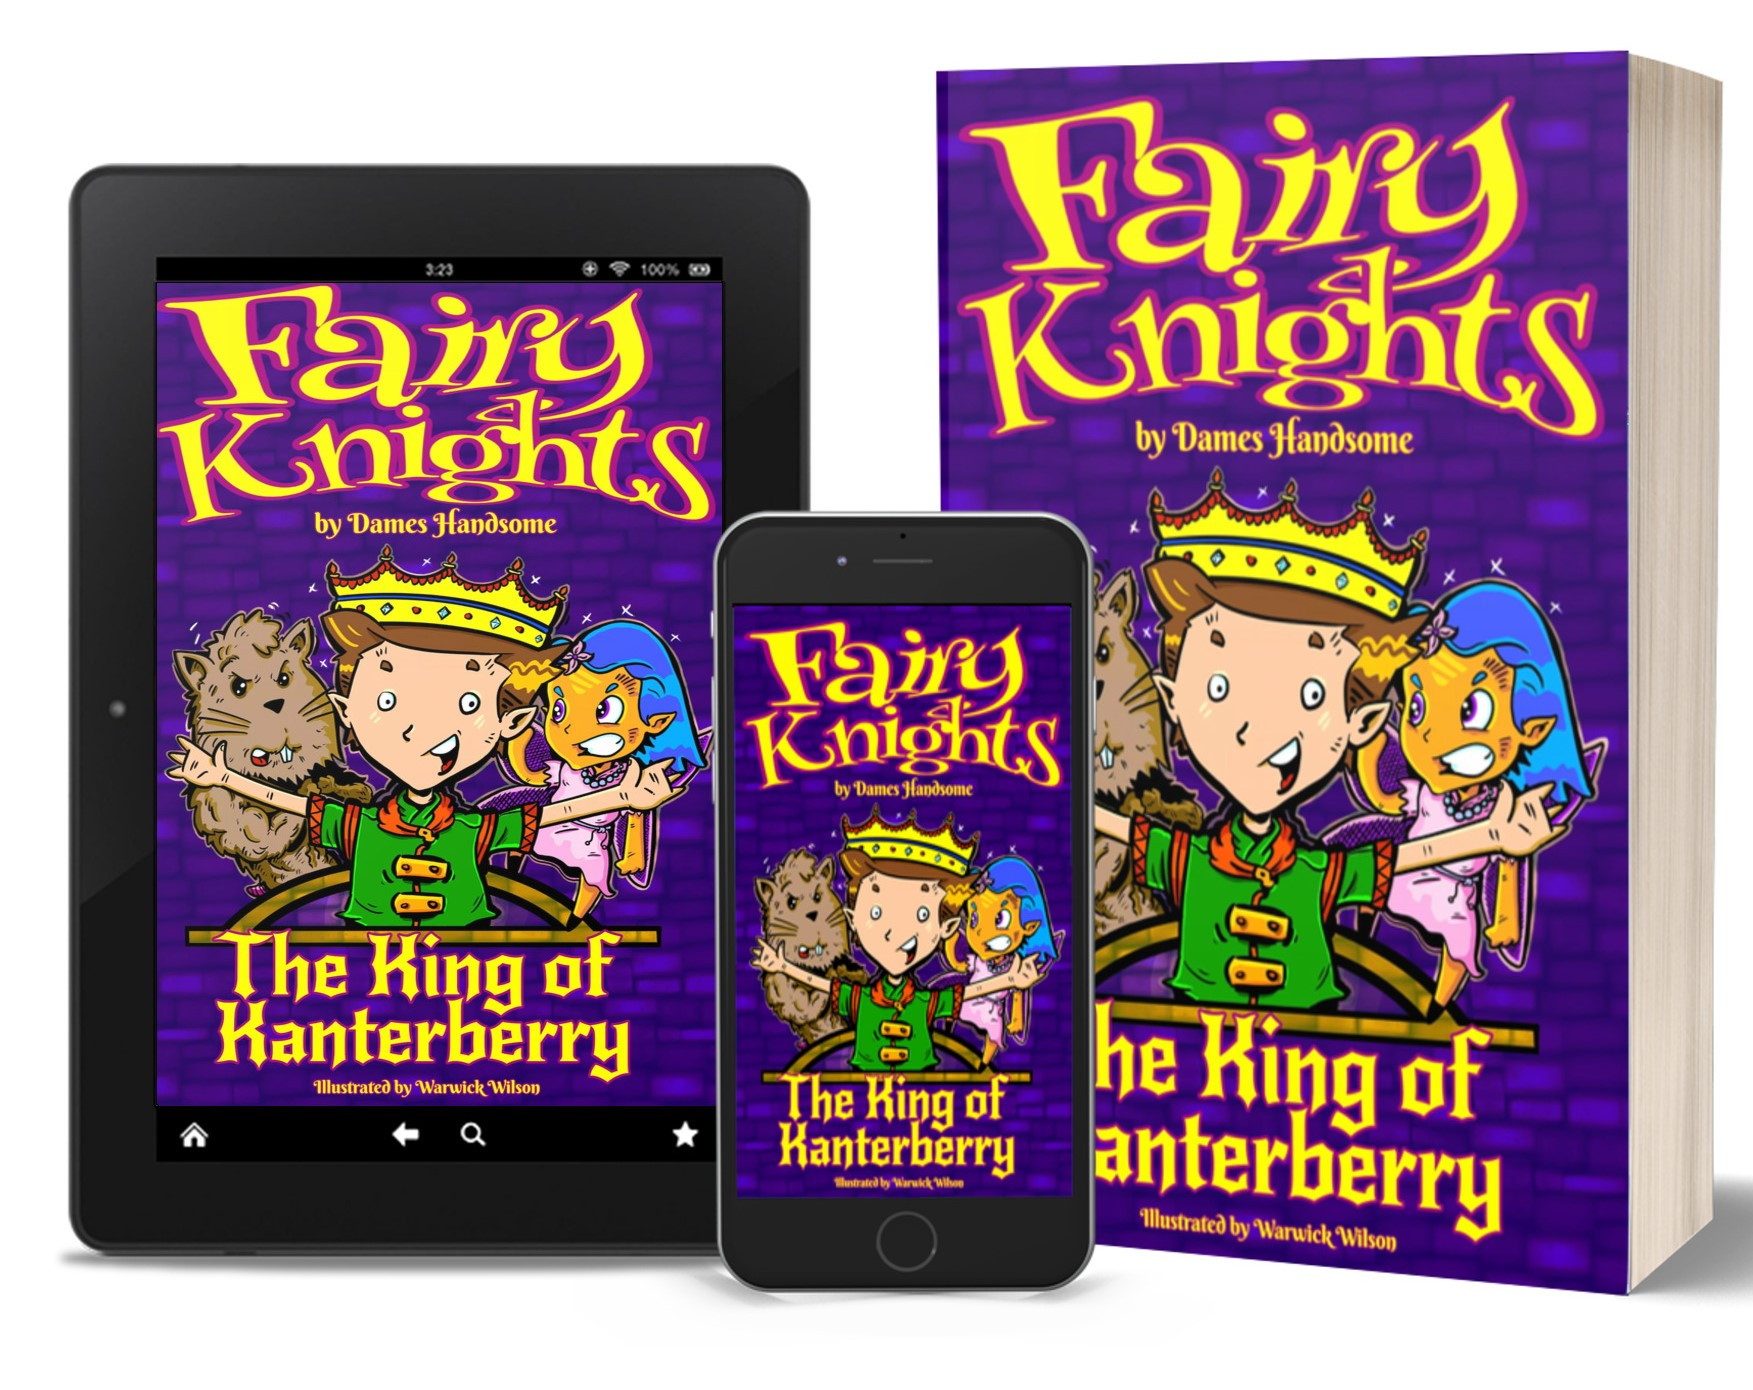 Fairy Knights: The King of Kanterberry Book Review